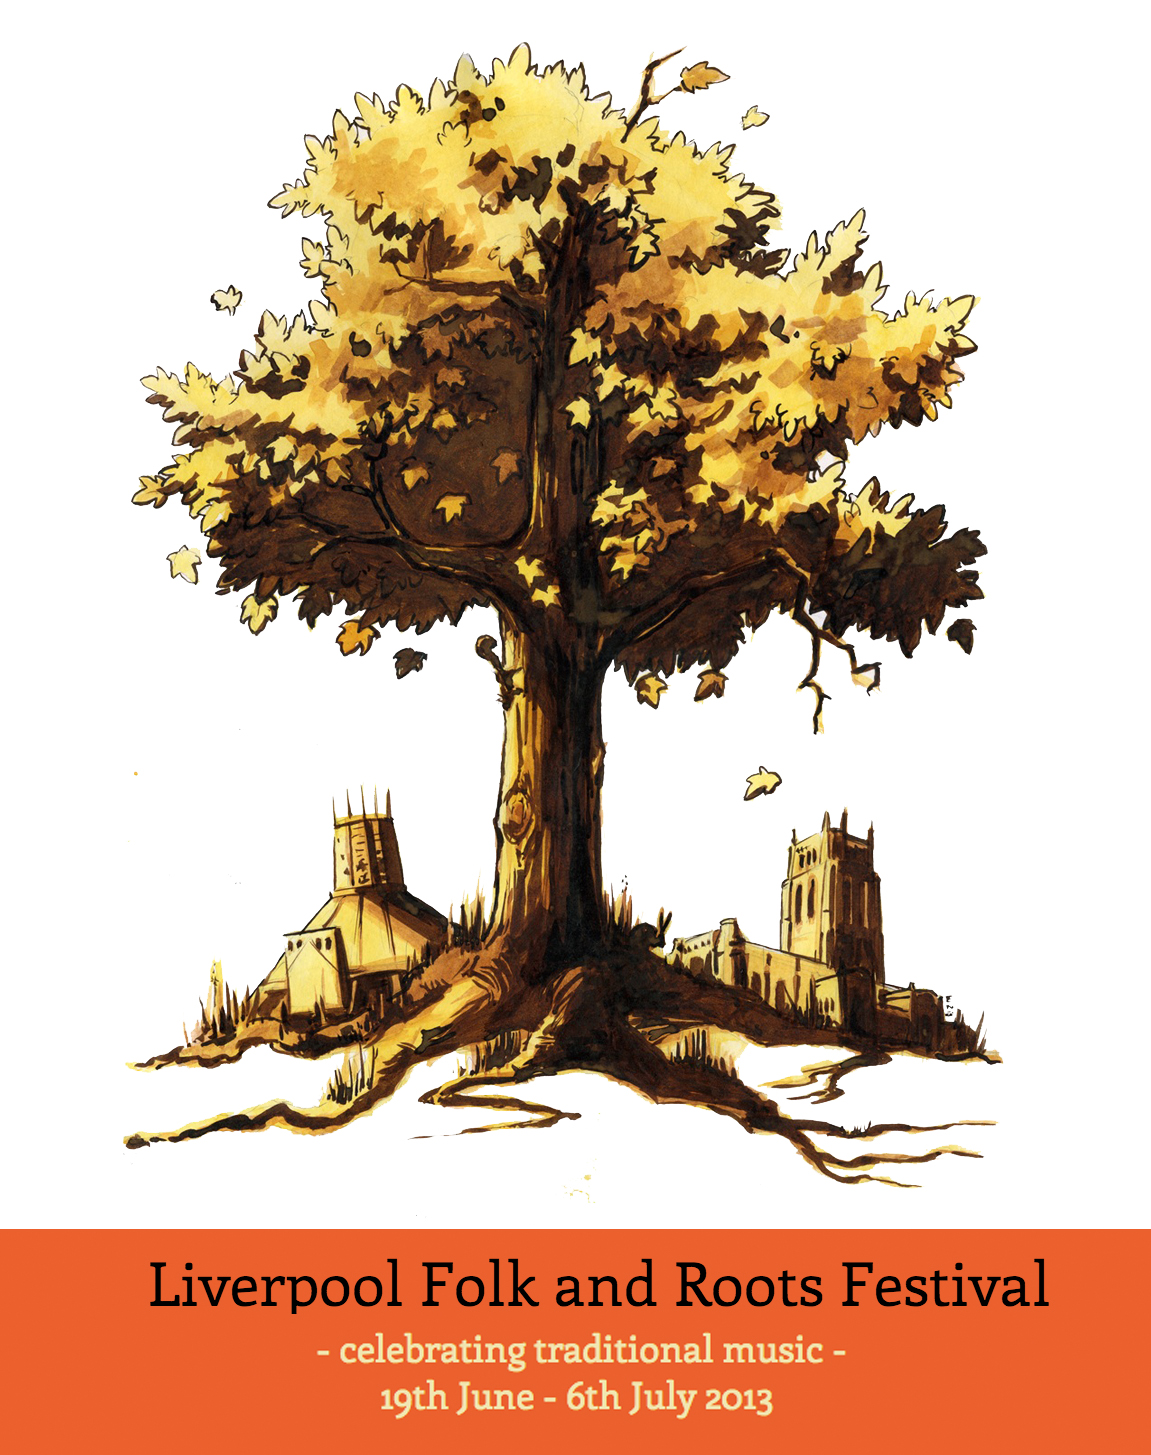 Liverpool Folk and Roots Festival 2013